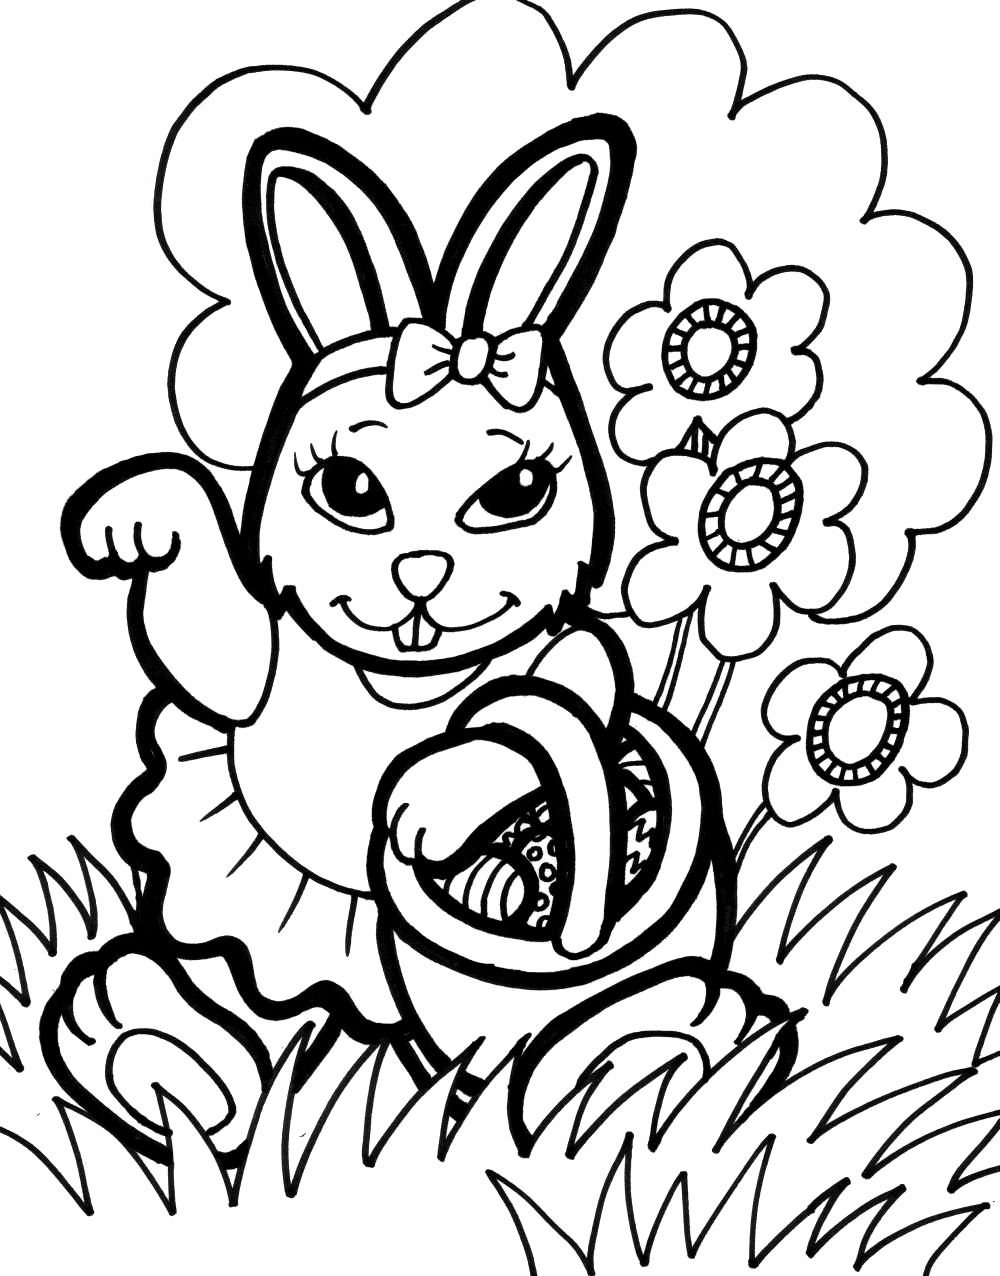 printable bunny coloring pages bunny rabbit coloring pages to download and print for free printable pages coloring bunny